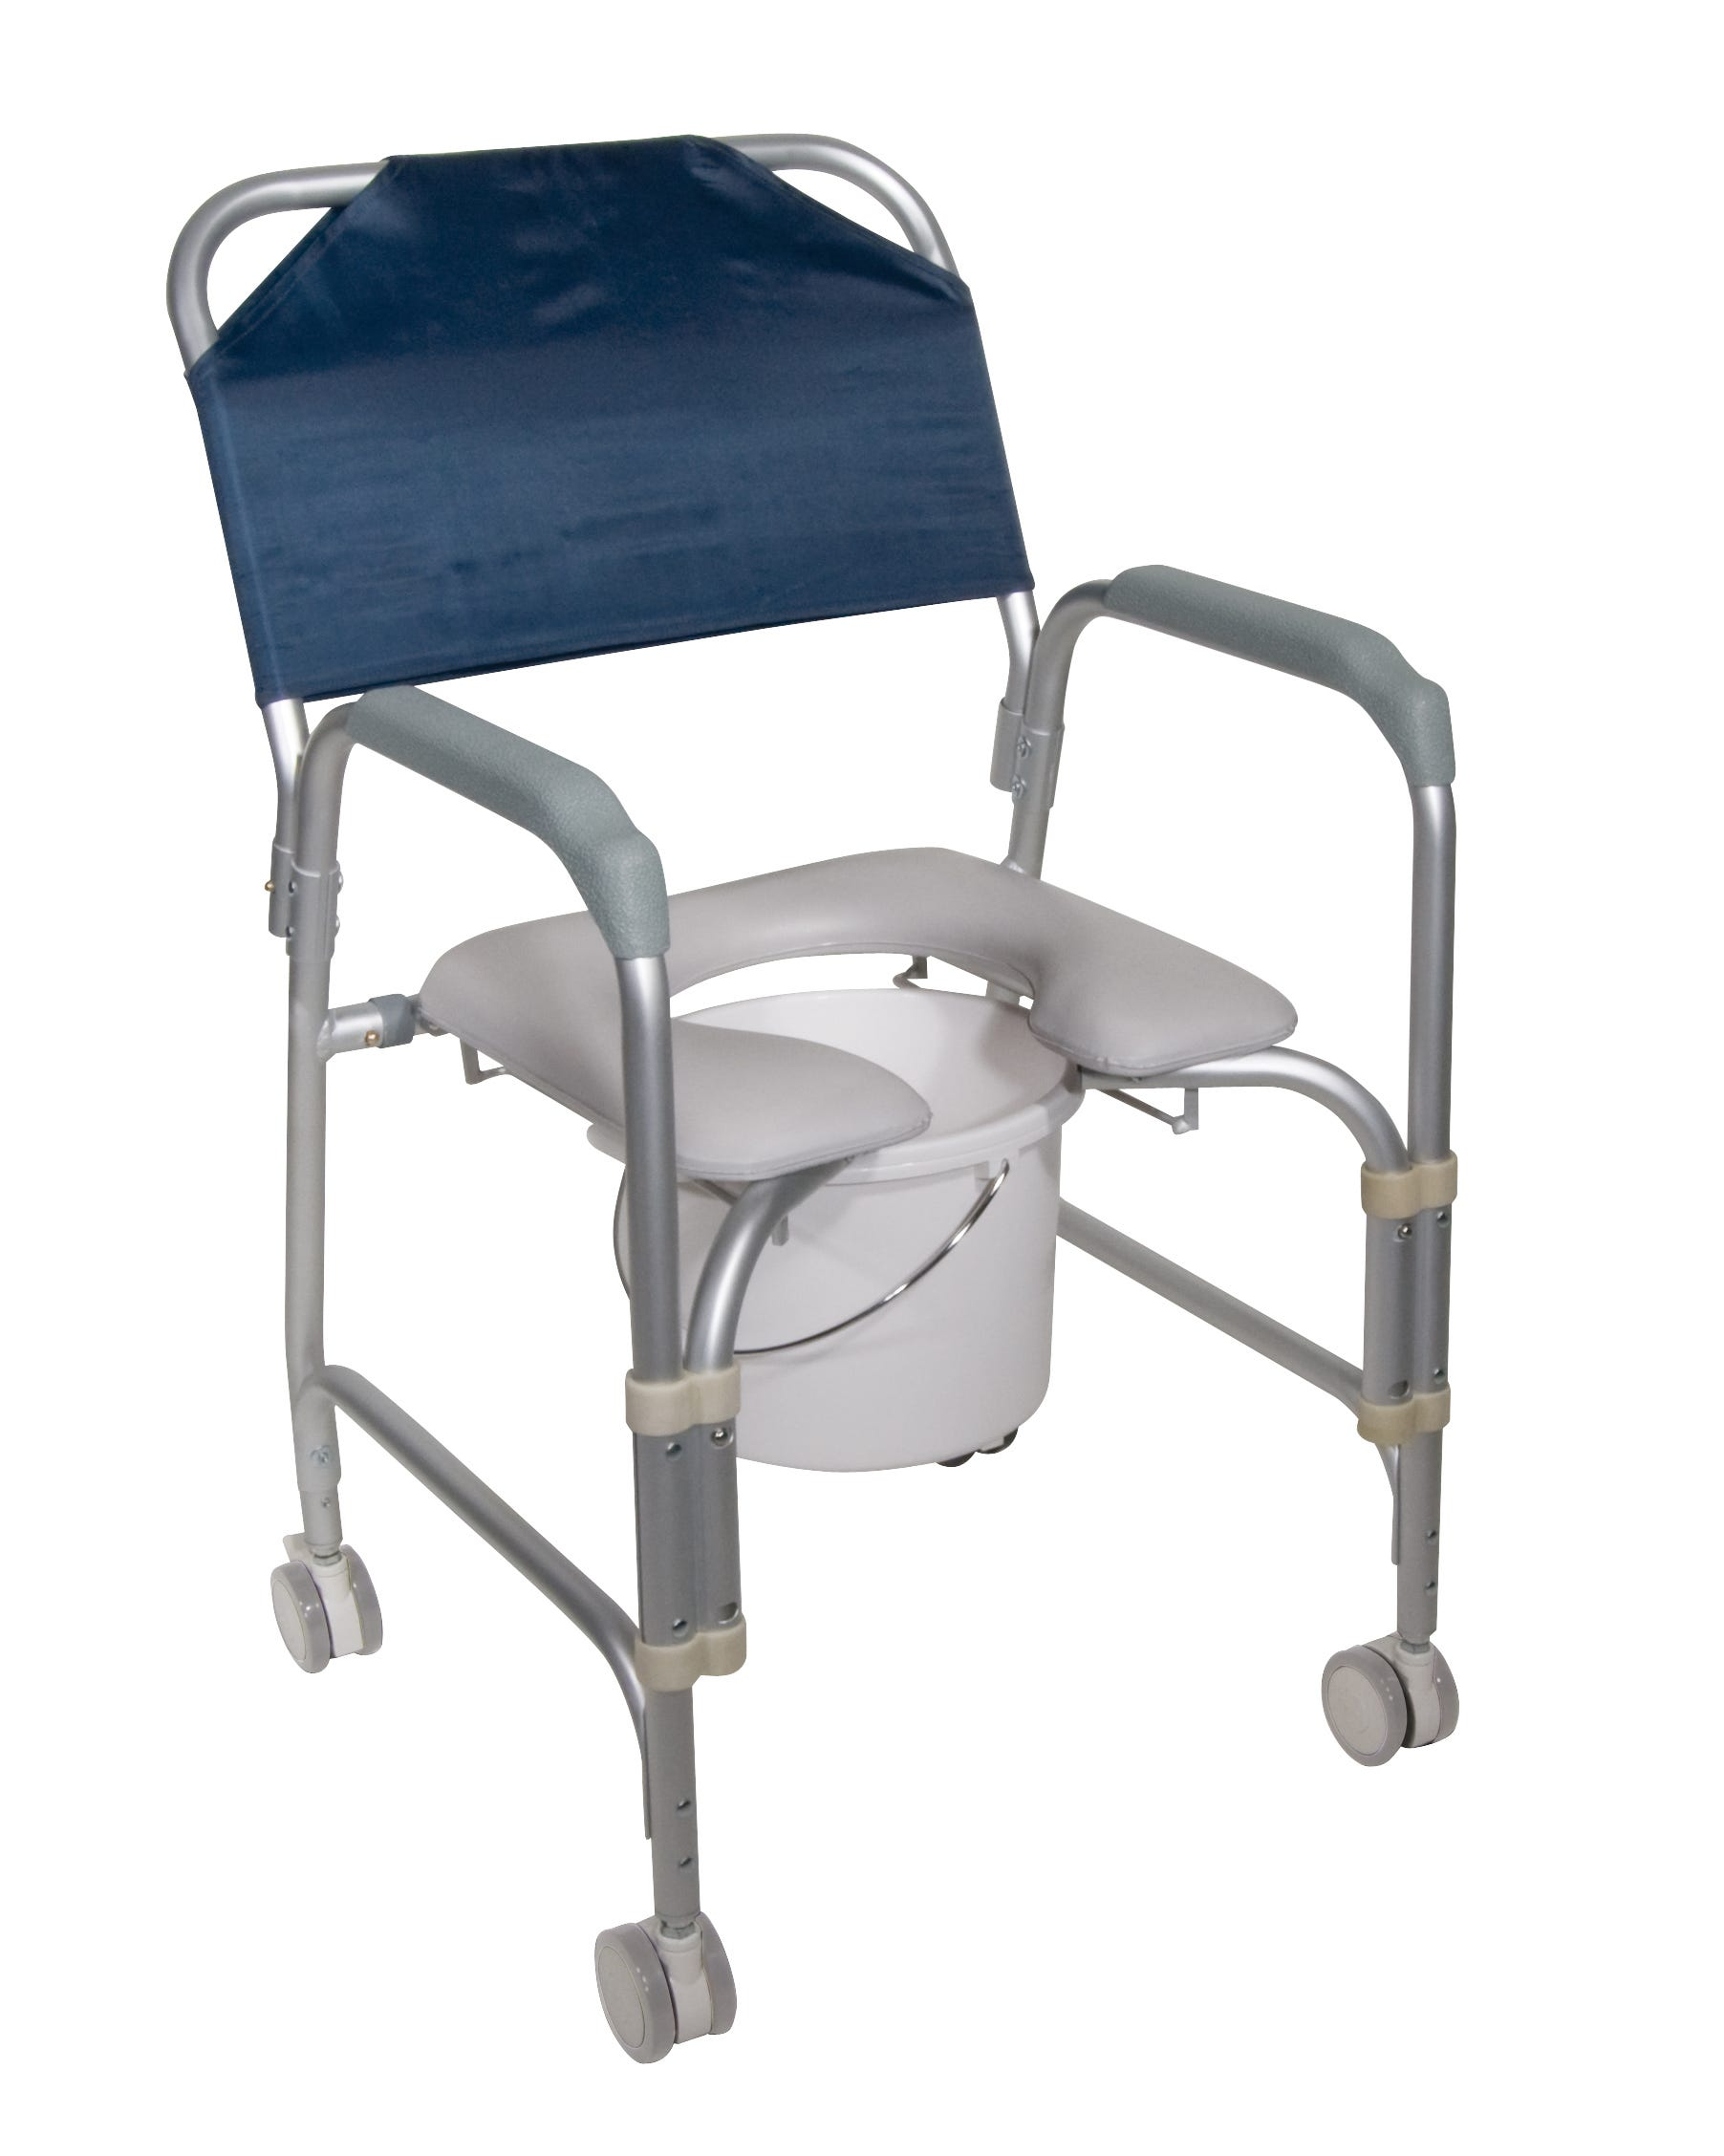 Commodes - Patient Moving Aids - CME formerly Claflin Medical ...